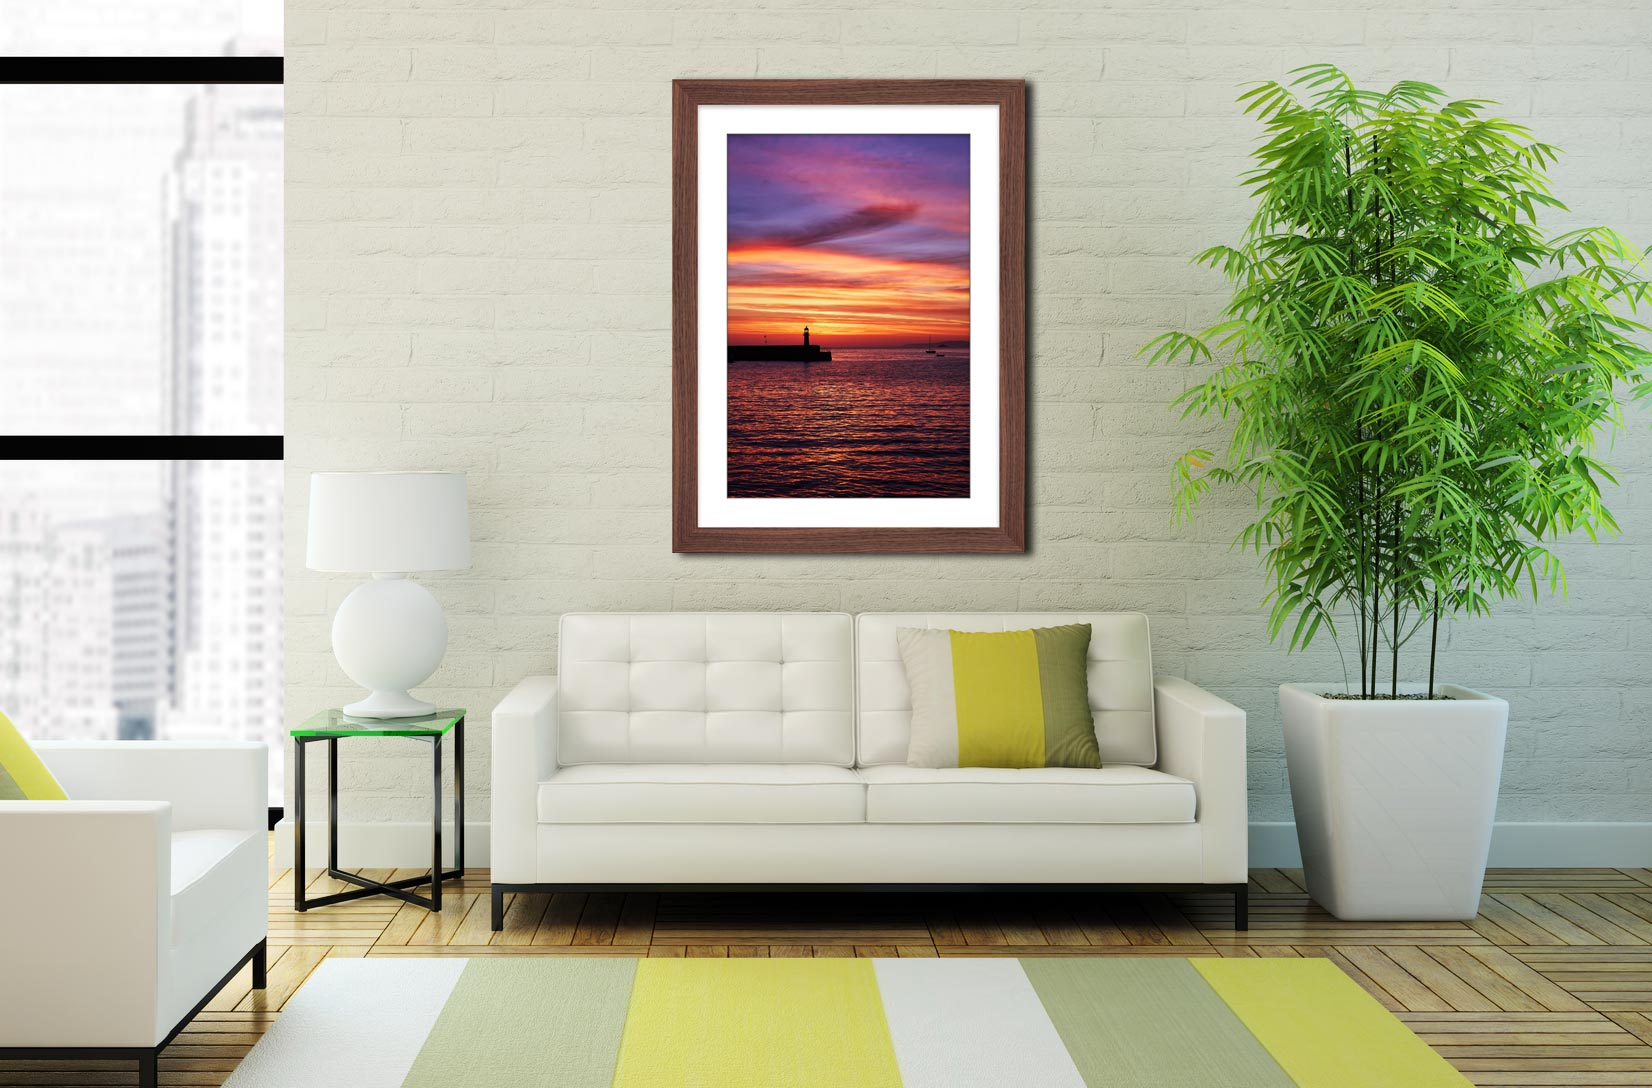 Dawn St Ives Lighthouse - Framed Print with Mount on Wall